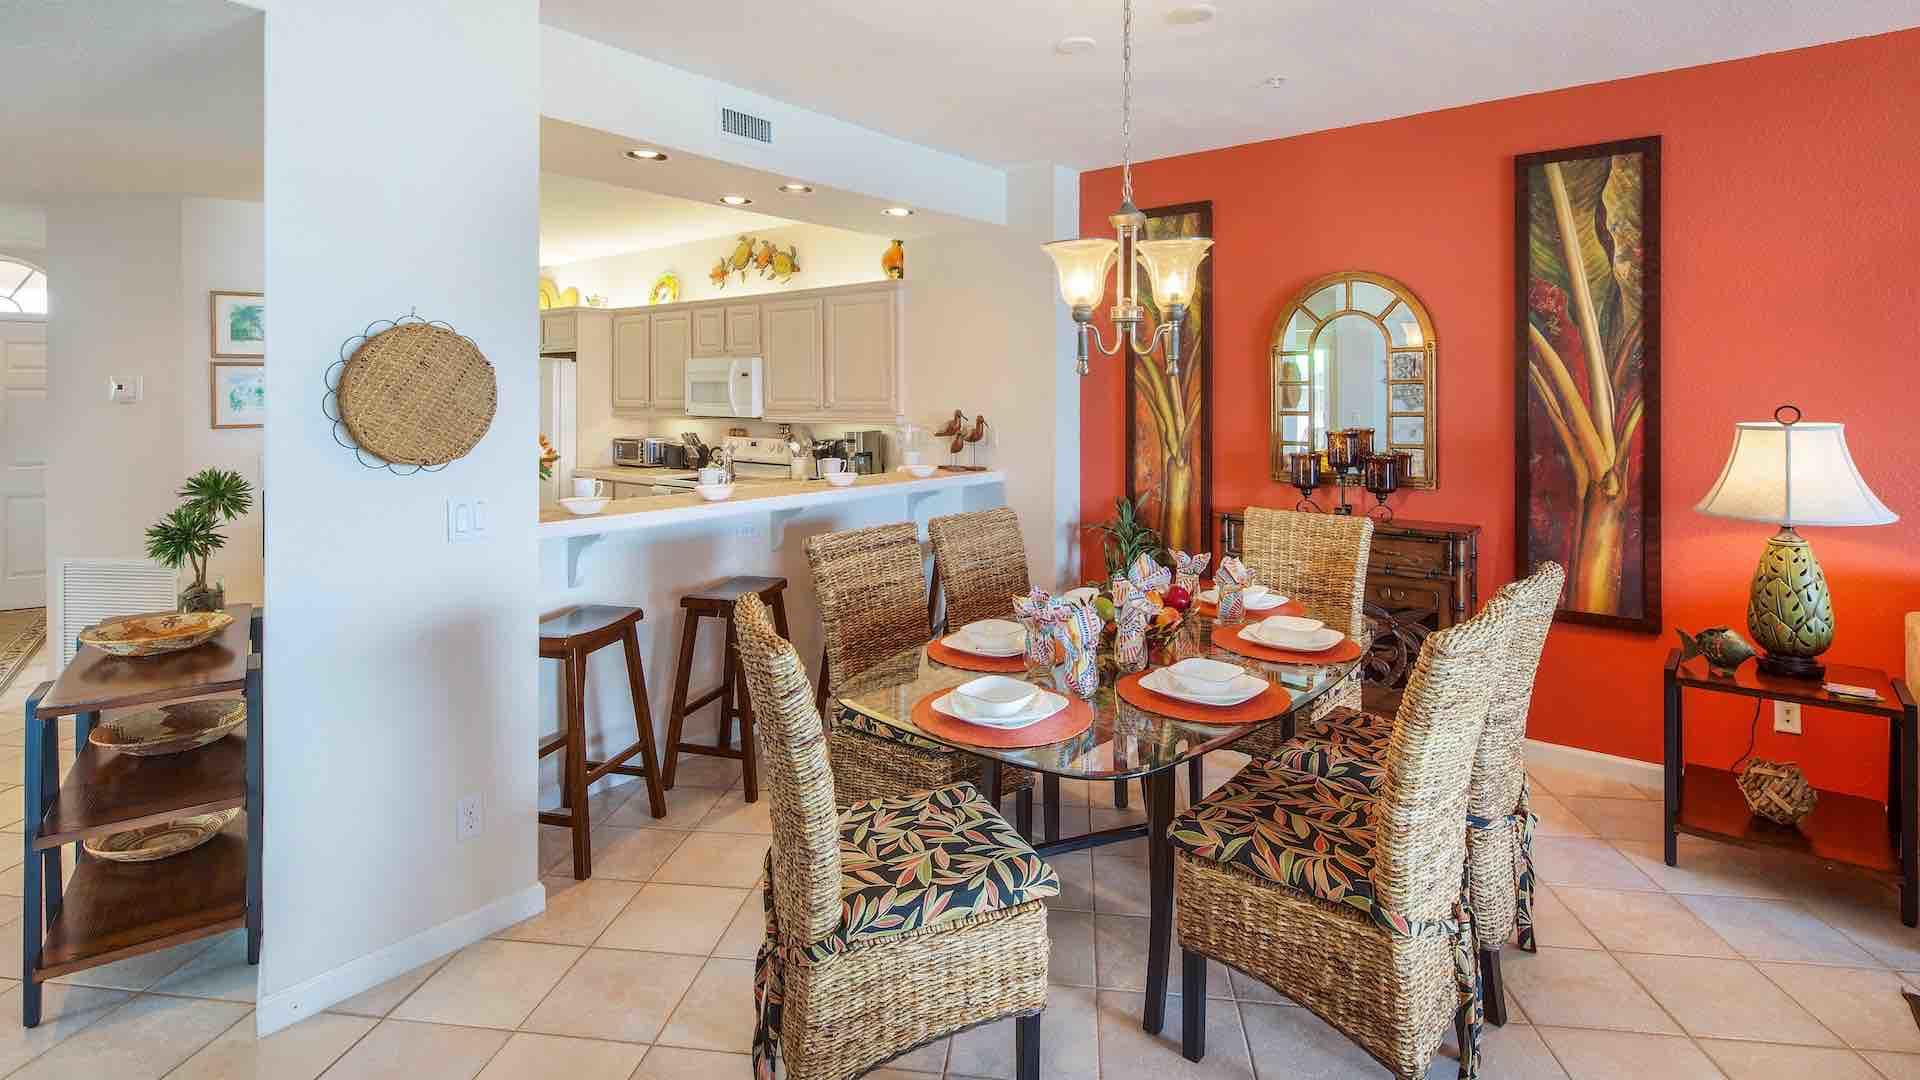 The indoor dining table seats six comfortably...